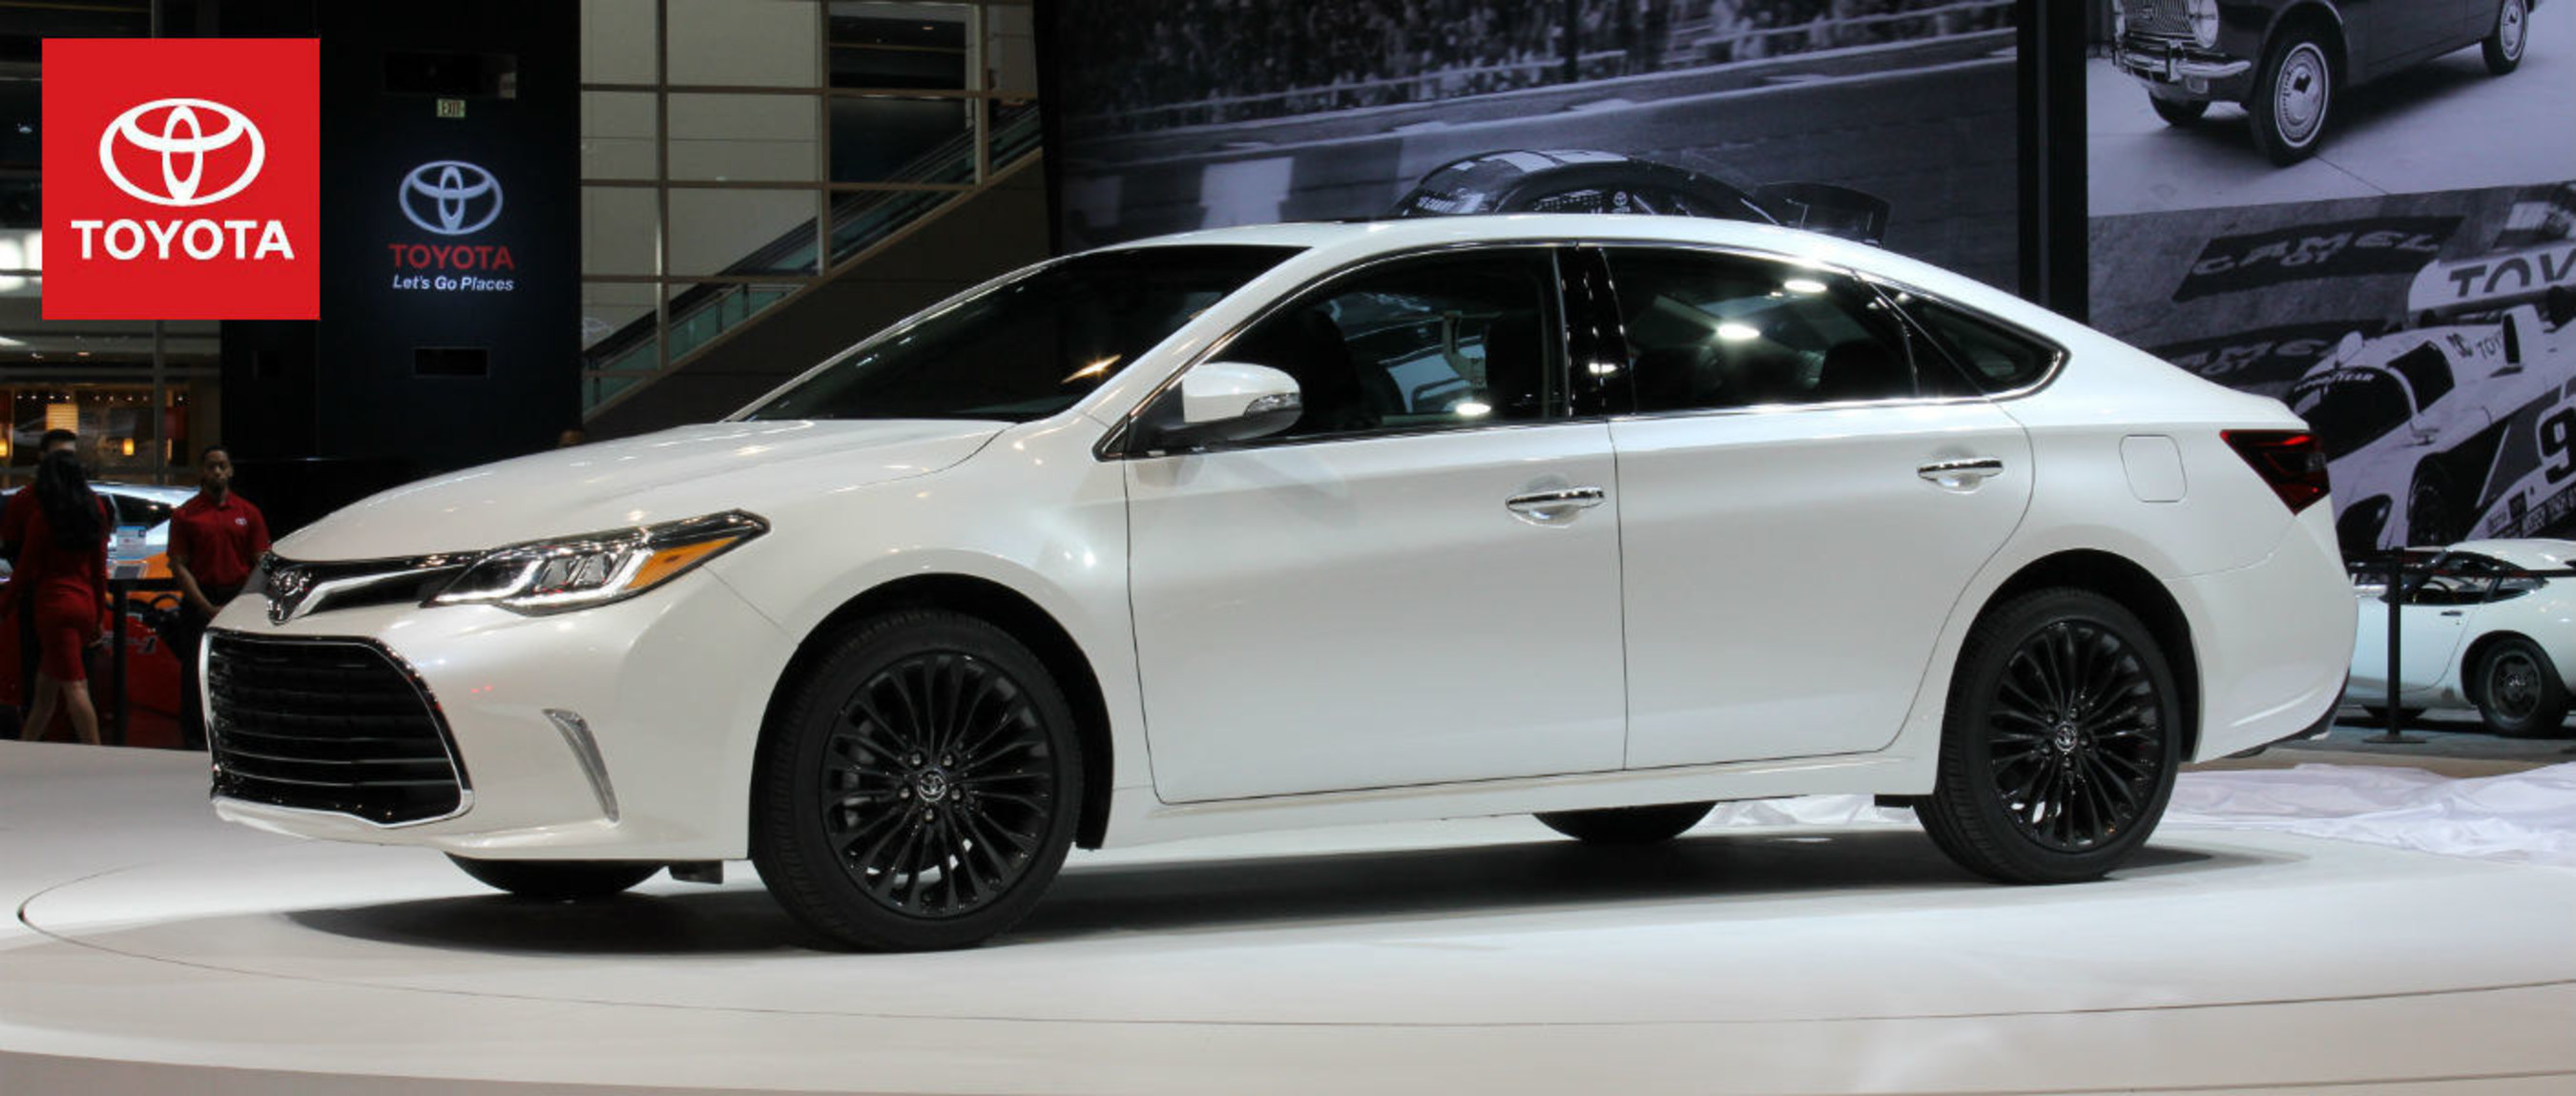 Central Indiana Toyota dealership previews refreshed Toyota Avalon prior to release